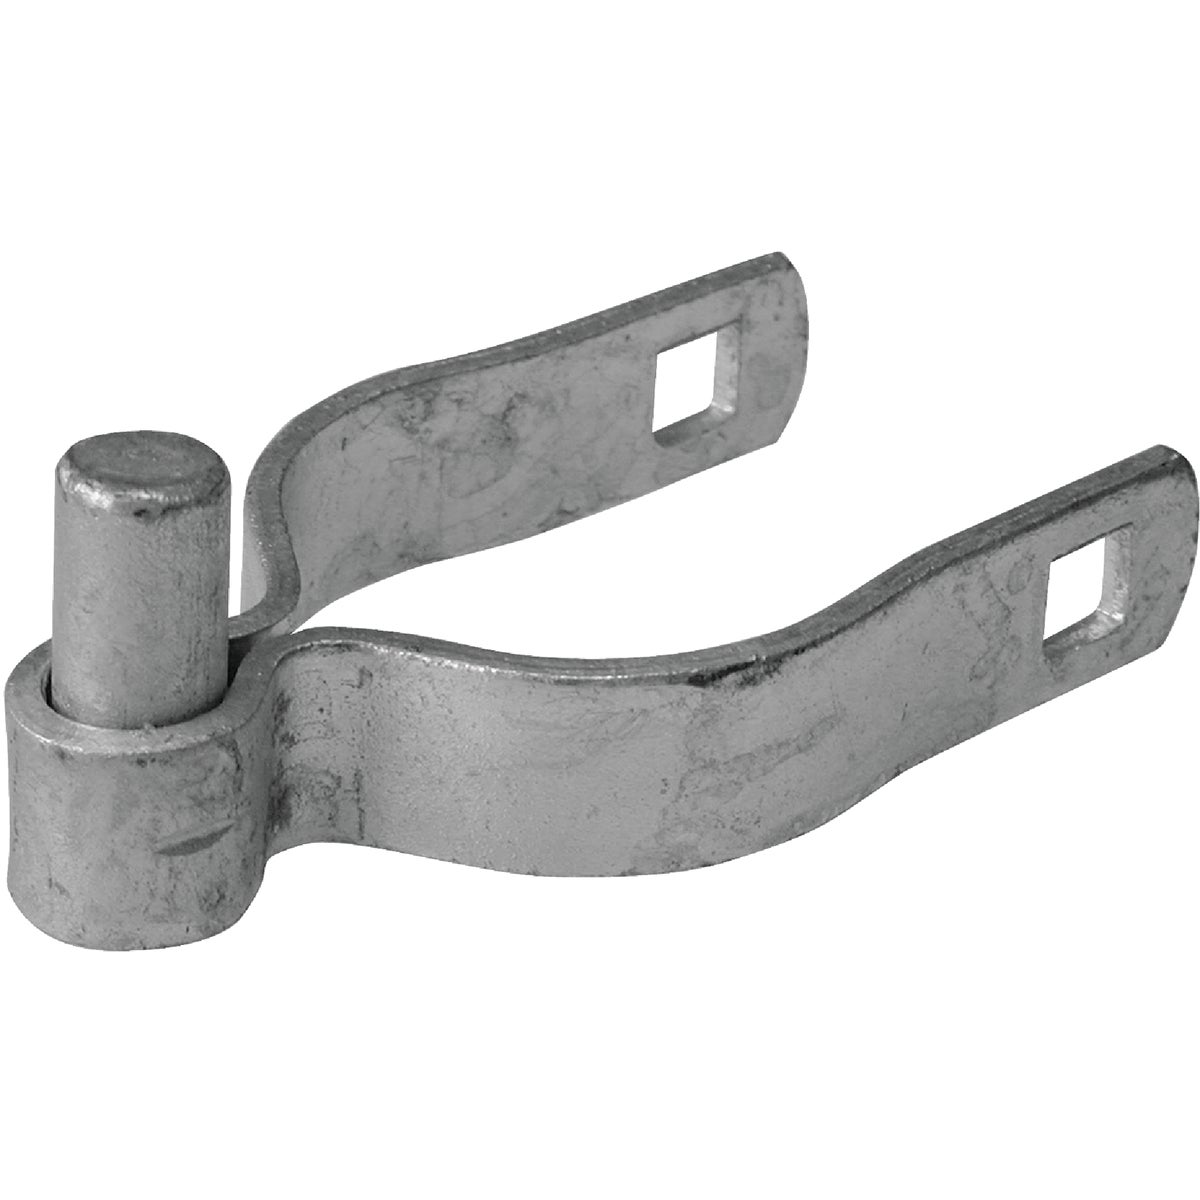 "2-3/8"" GATE POST HINGE - 328530C by Midwest Air Tech"